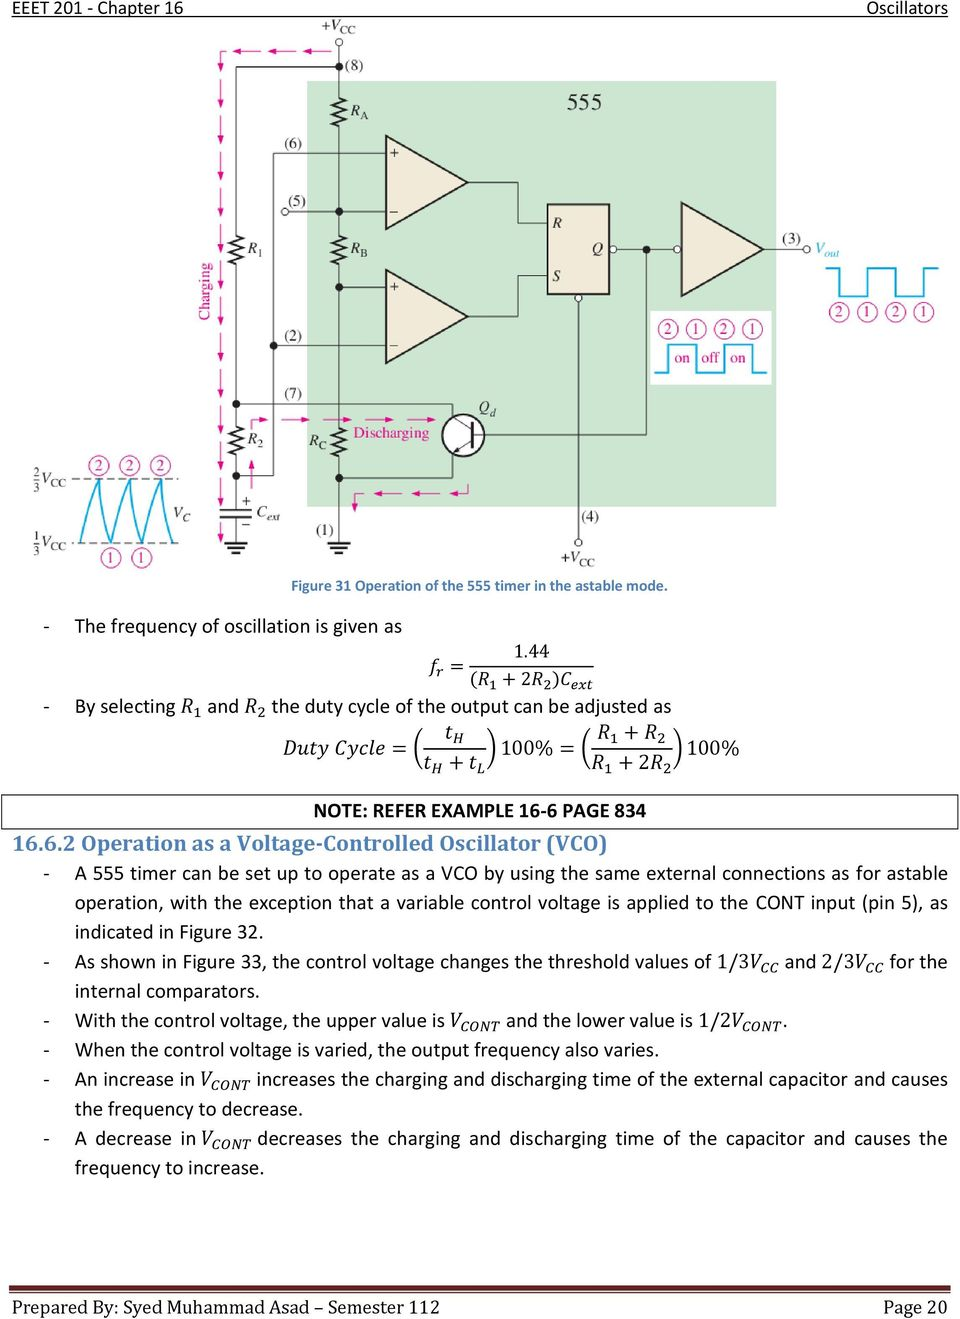 Chapter 16 Oscillators Pdf Bistabe Multivibrator Using 555 Timer Working Animation 6 Page 834 1662 Operation As A Voltage Controlled Oscillator Vco